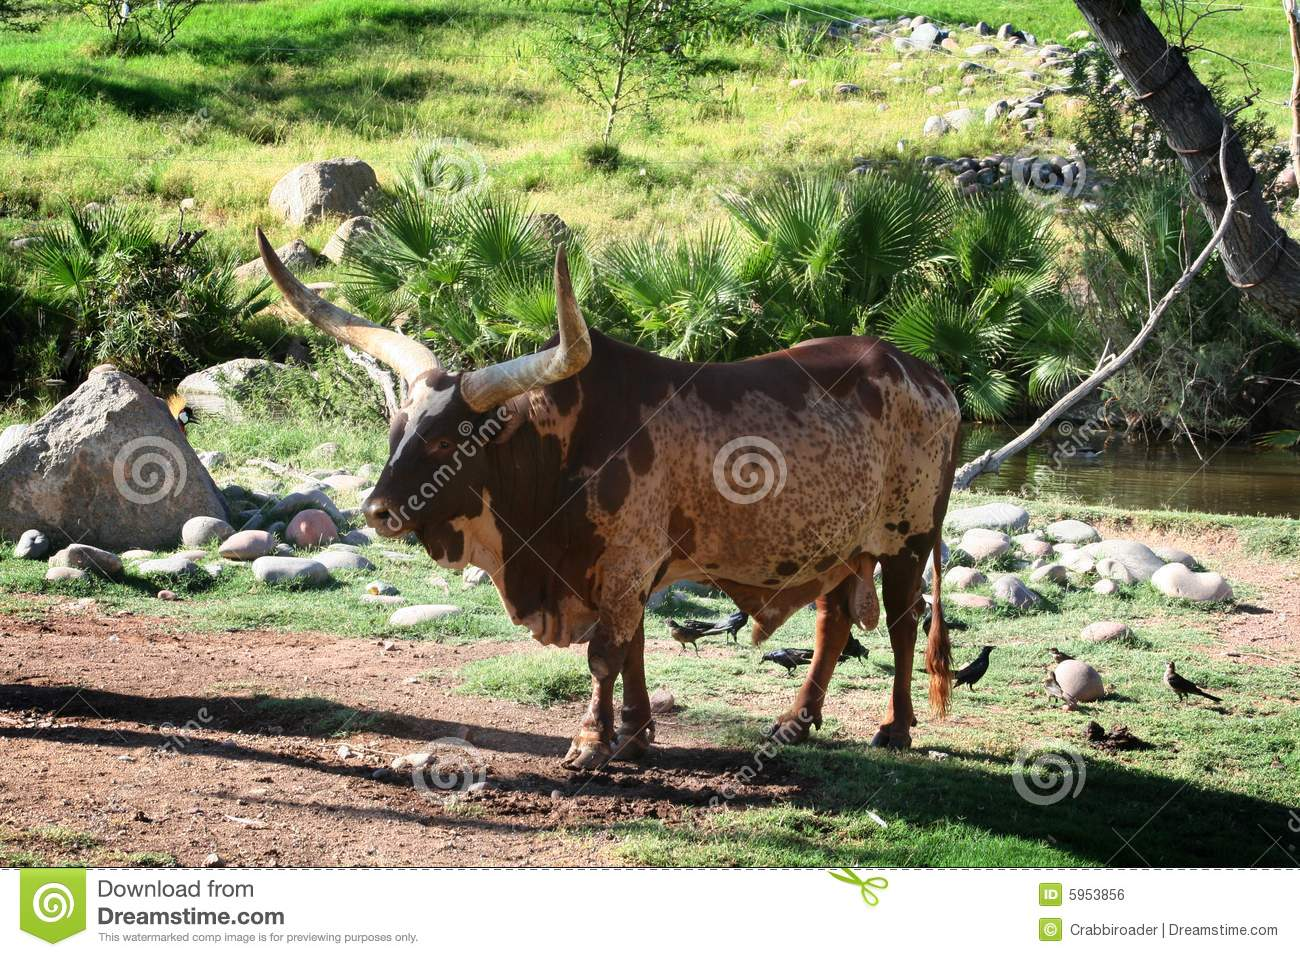 Local knowledge on ankole cattle in